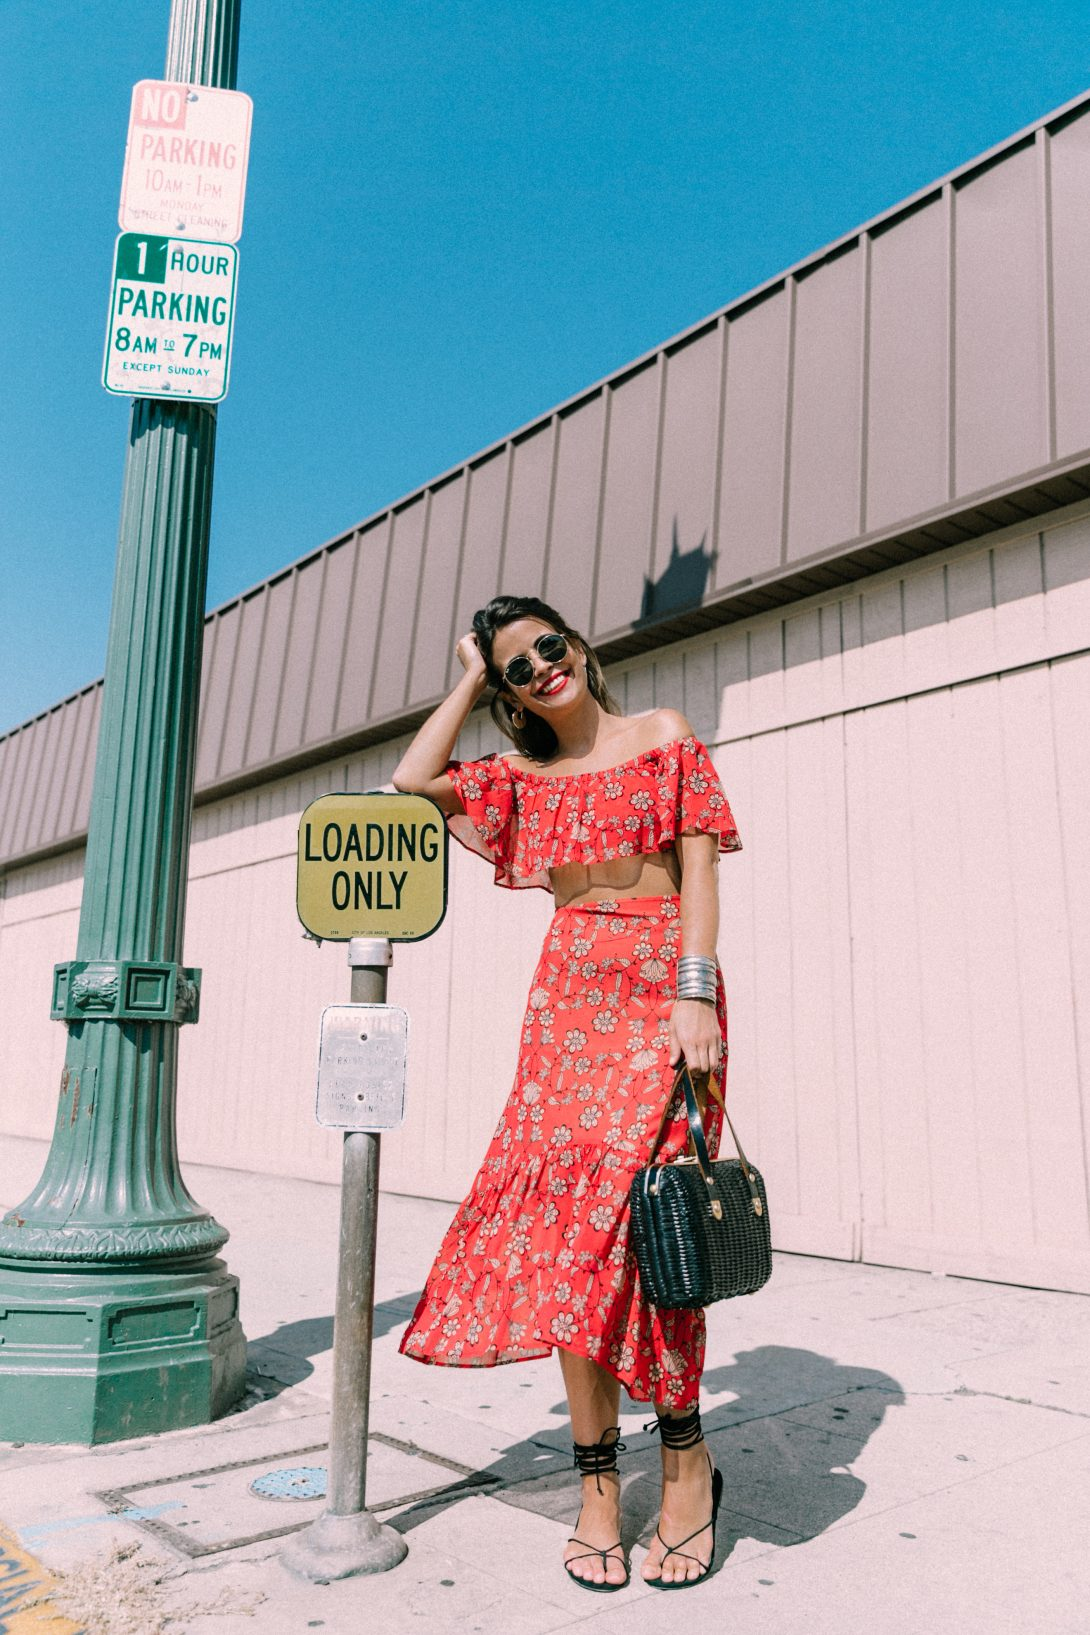 For_Love_And_Lemons-Raffia_Basket-Vintage-Cropped_Top-Midi_Skirt-Lace_Up_Sandals-Revolve_Clothing-Outfit-Collage_Vintage--16